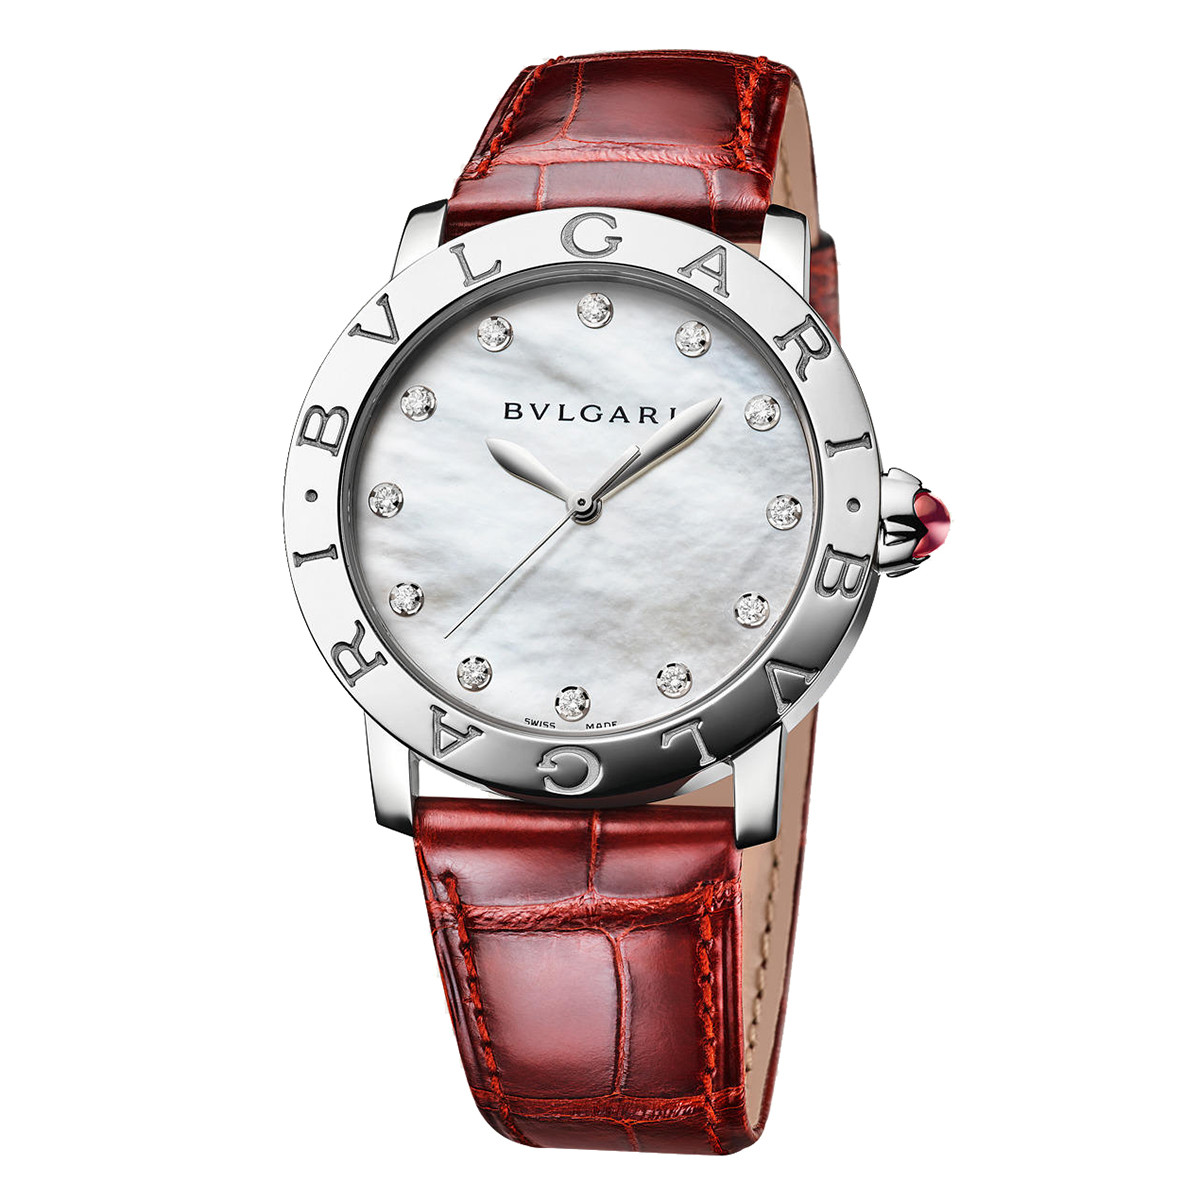 Bvlgari-Bvlgari 37mm Steel (102748)